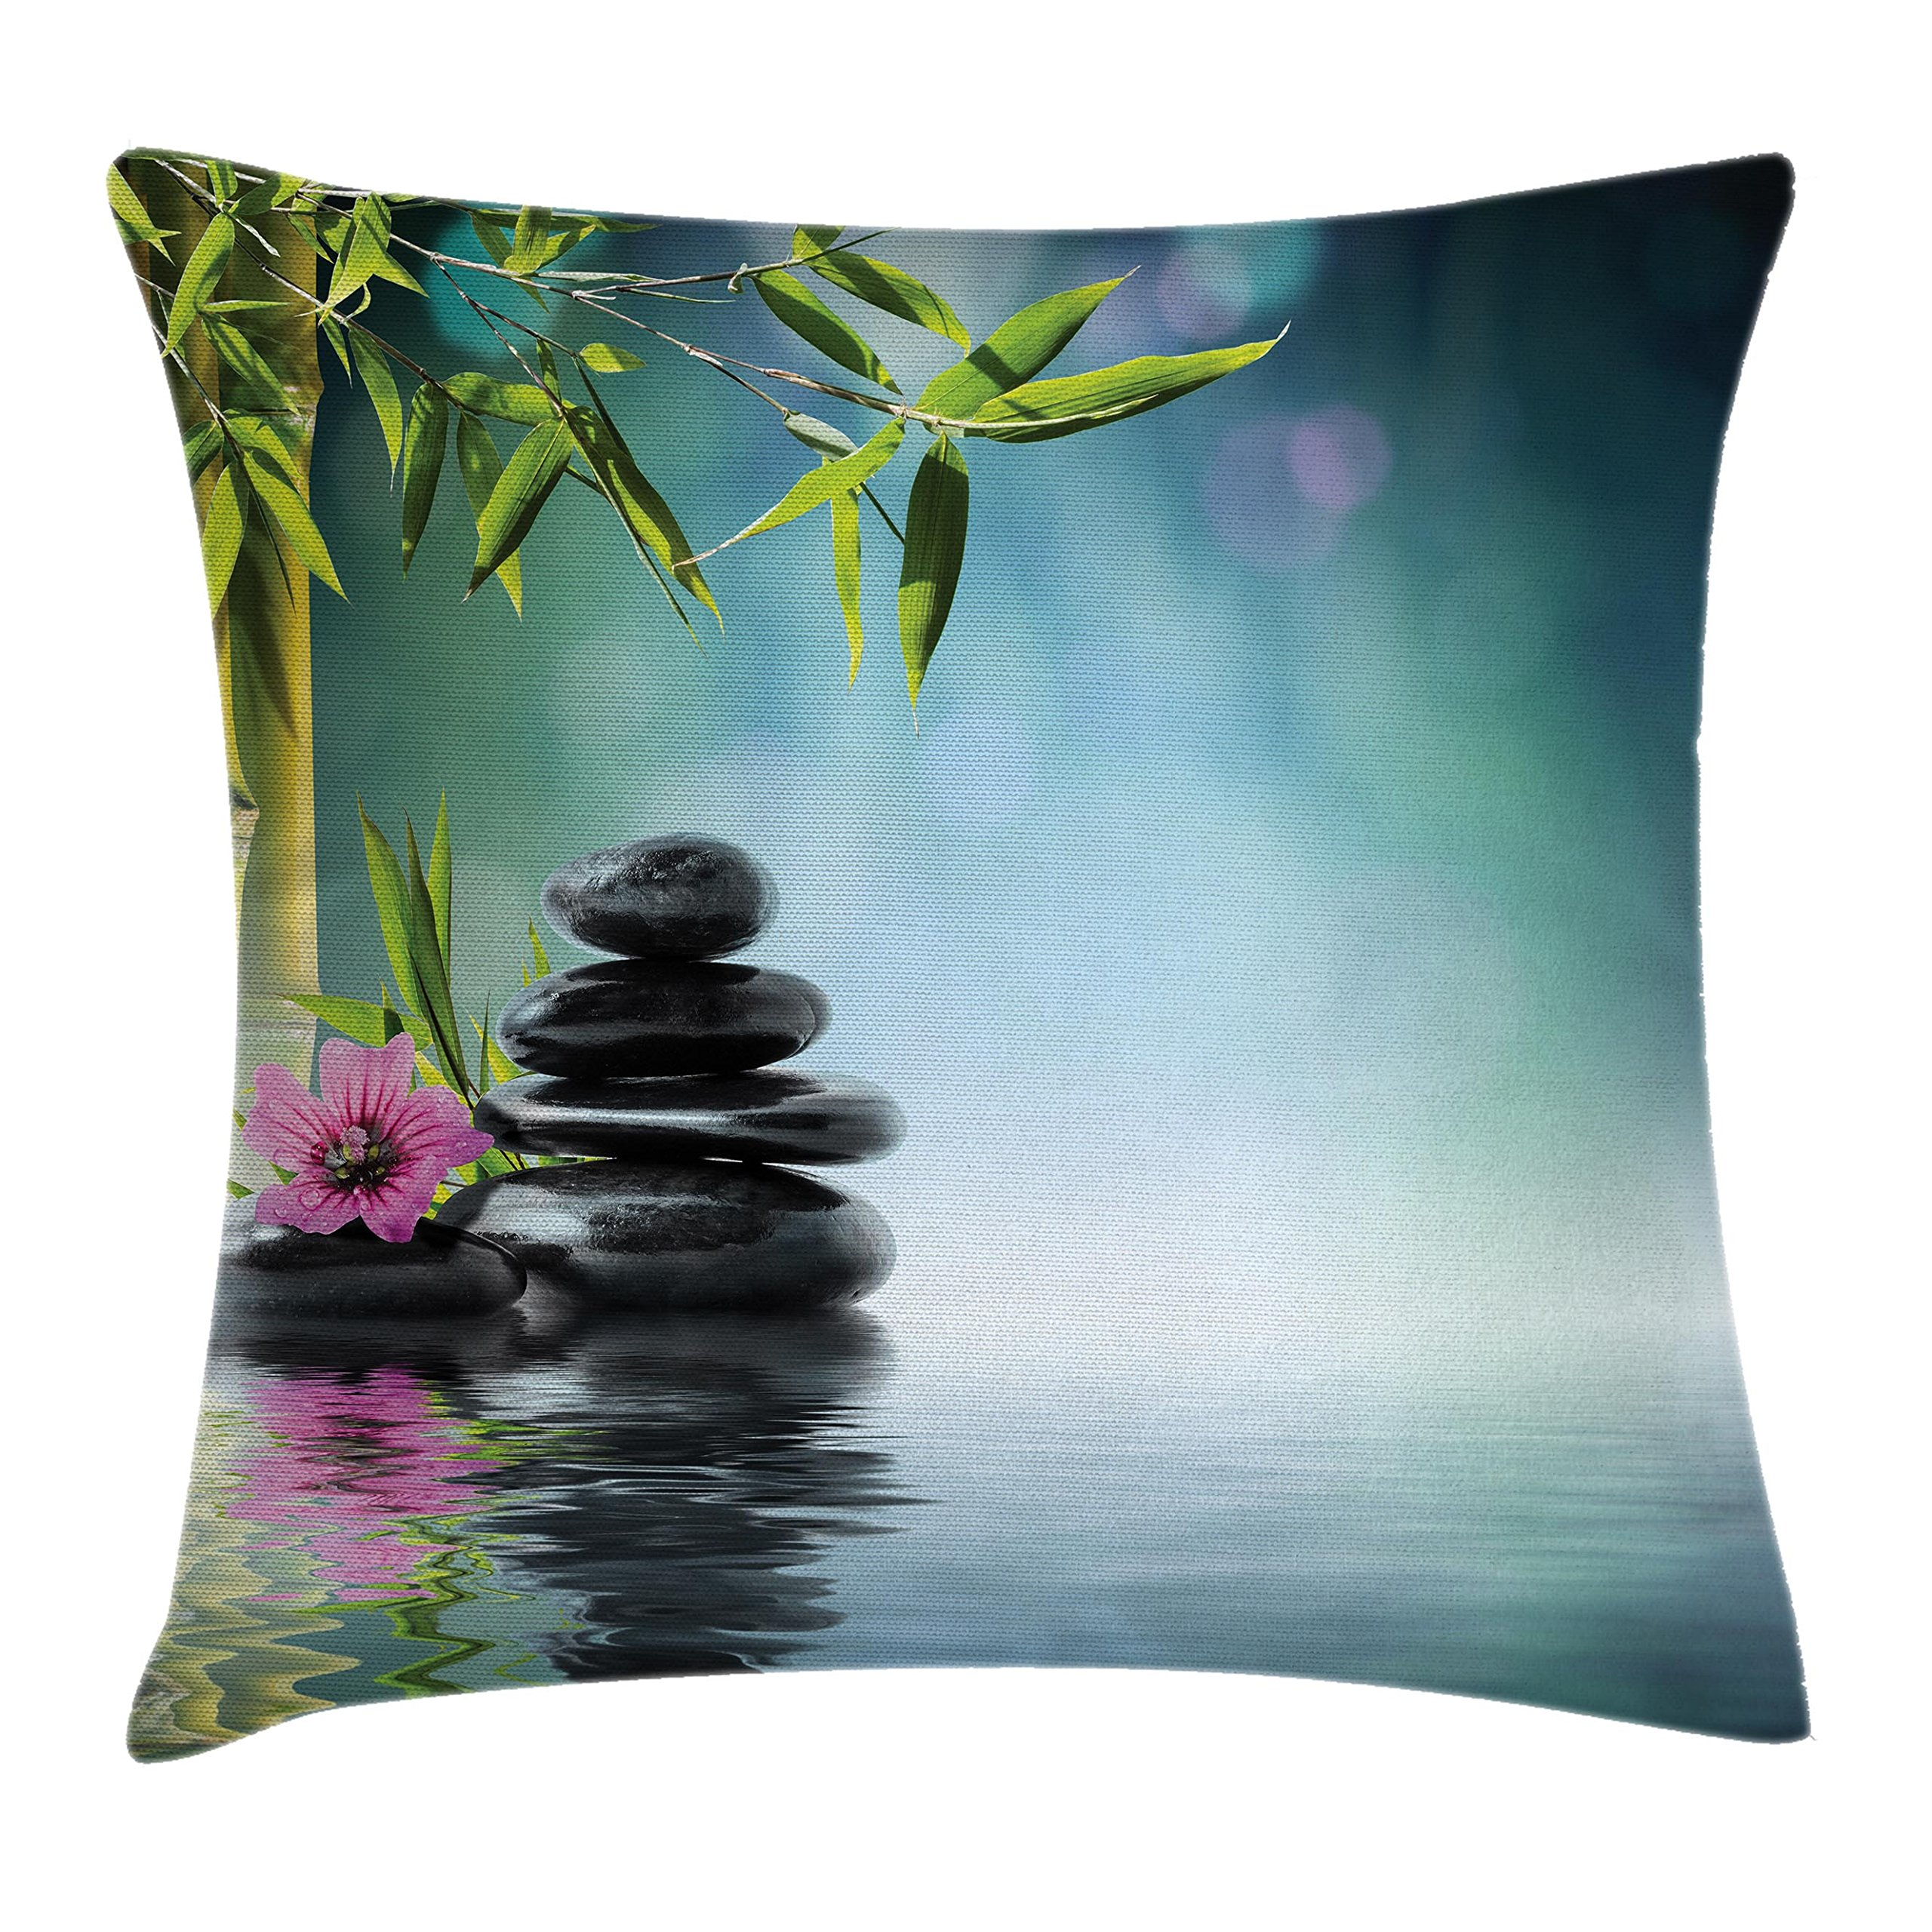 Ambesonne Spa Decor Throw Pillow Cushion Cover, Tower Stone and Hibiscus with Bamboo on The Water Blurred Background, Decorative Square Accent Pillow Case, 20 X 20 inches, Turquoise and Green